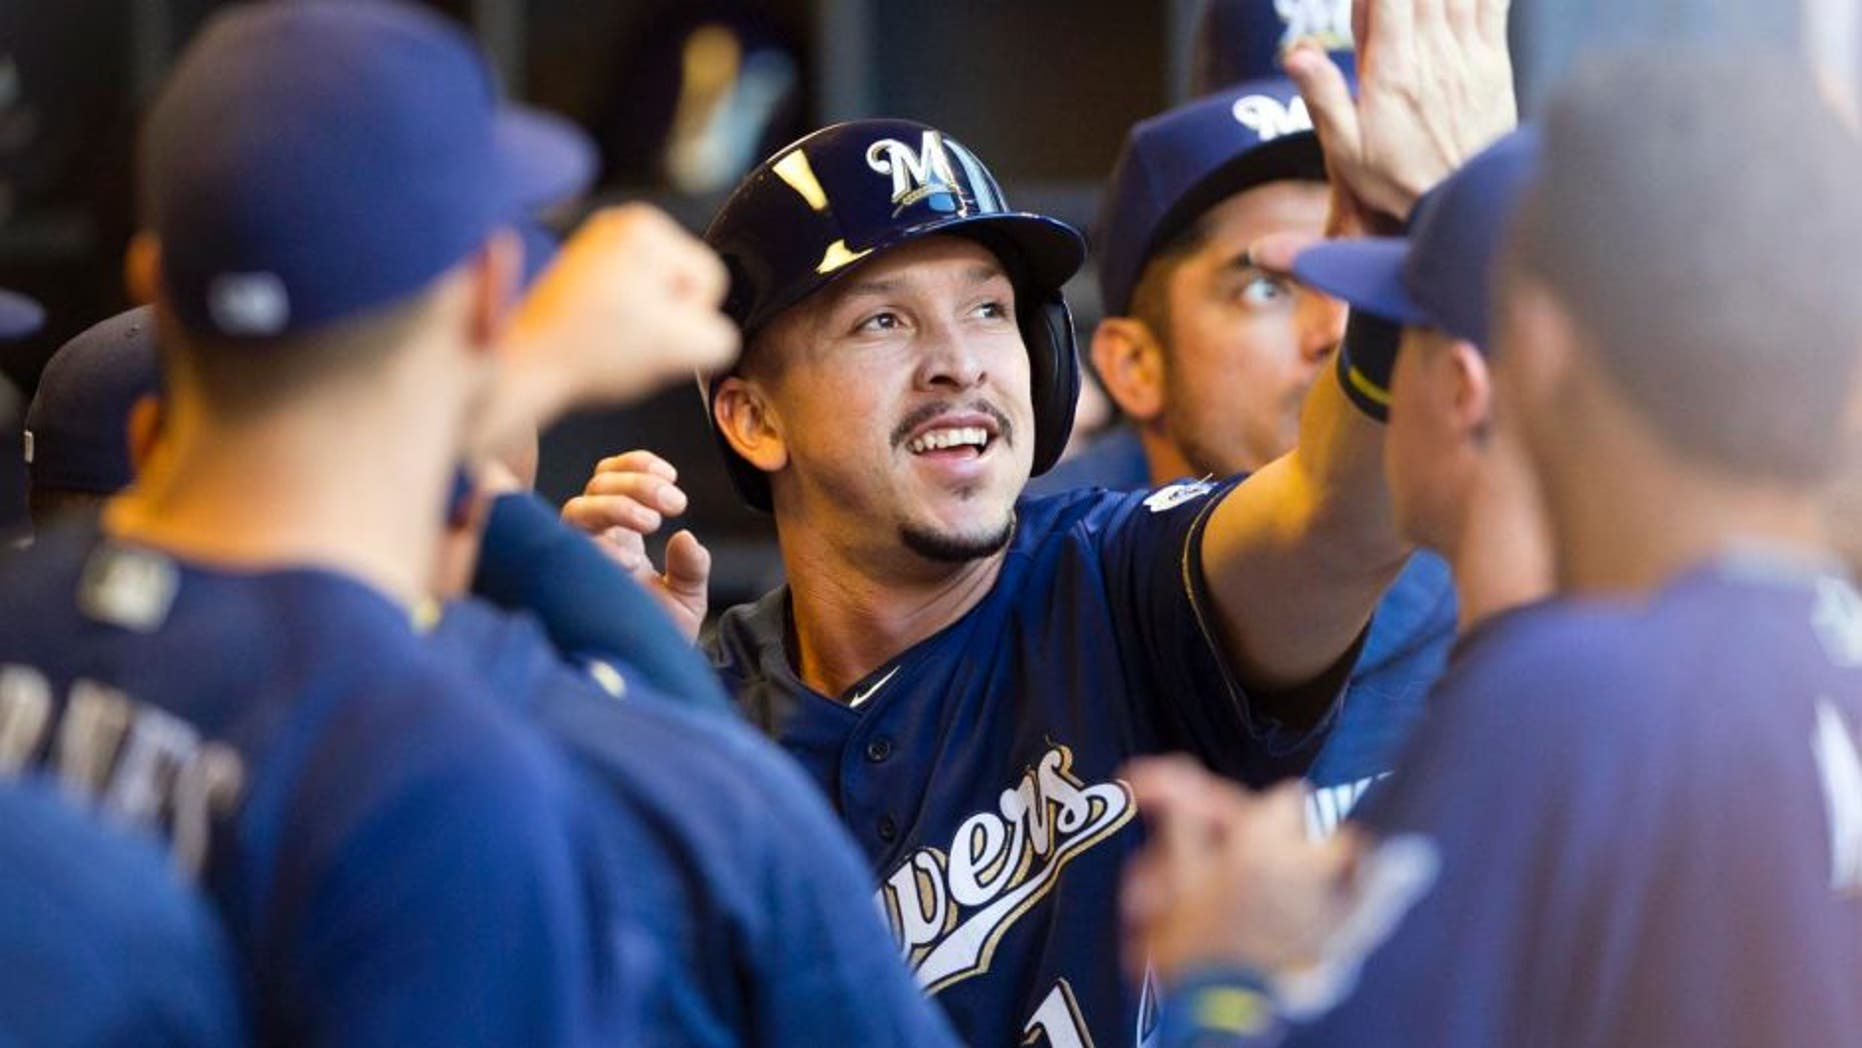 Monday, Aug 8, 2016: Milwaukee Brewers third baseman Hernan Perez high fives teammates in the dugout after scoring during the second inning against the Atlanta Braves at Miller Park. The Brewers lost 4-3.